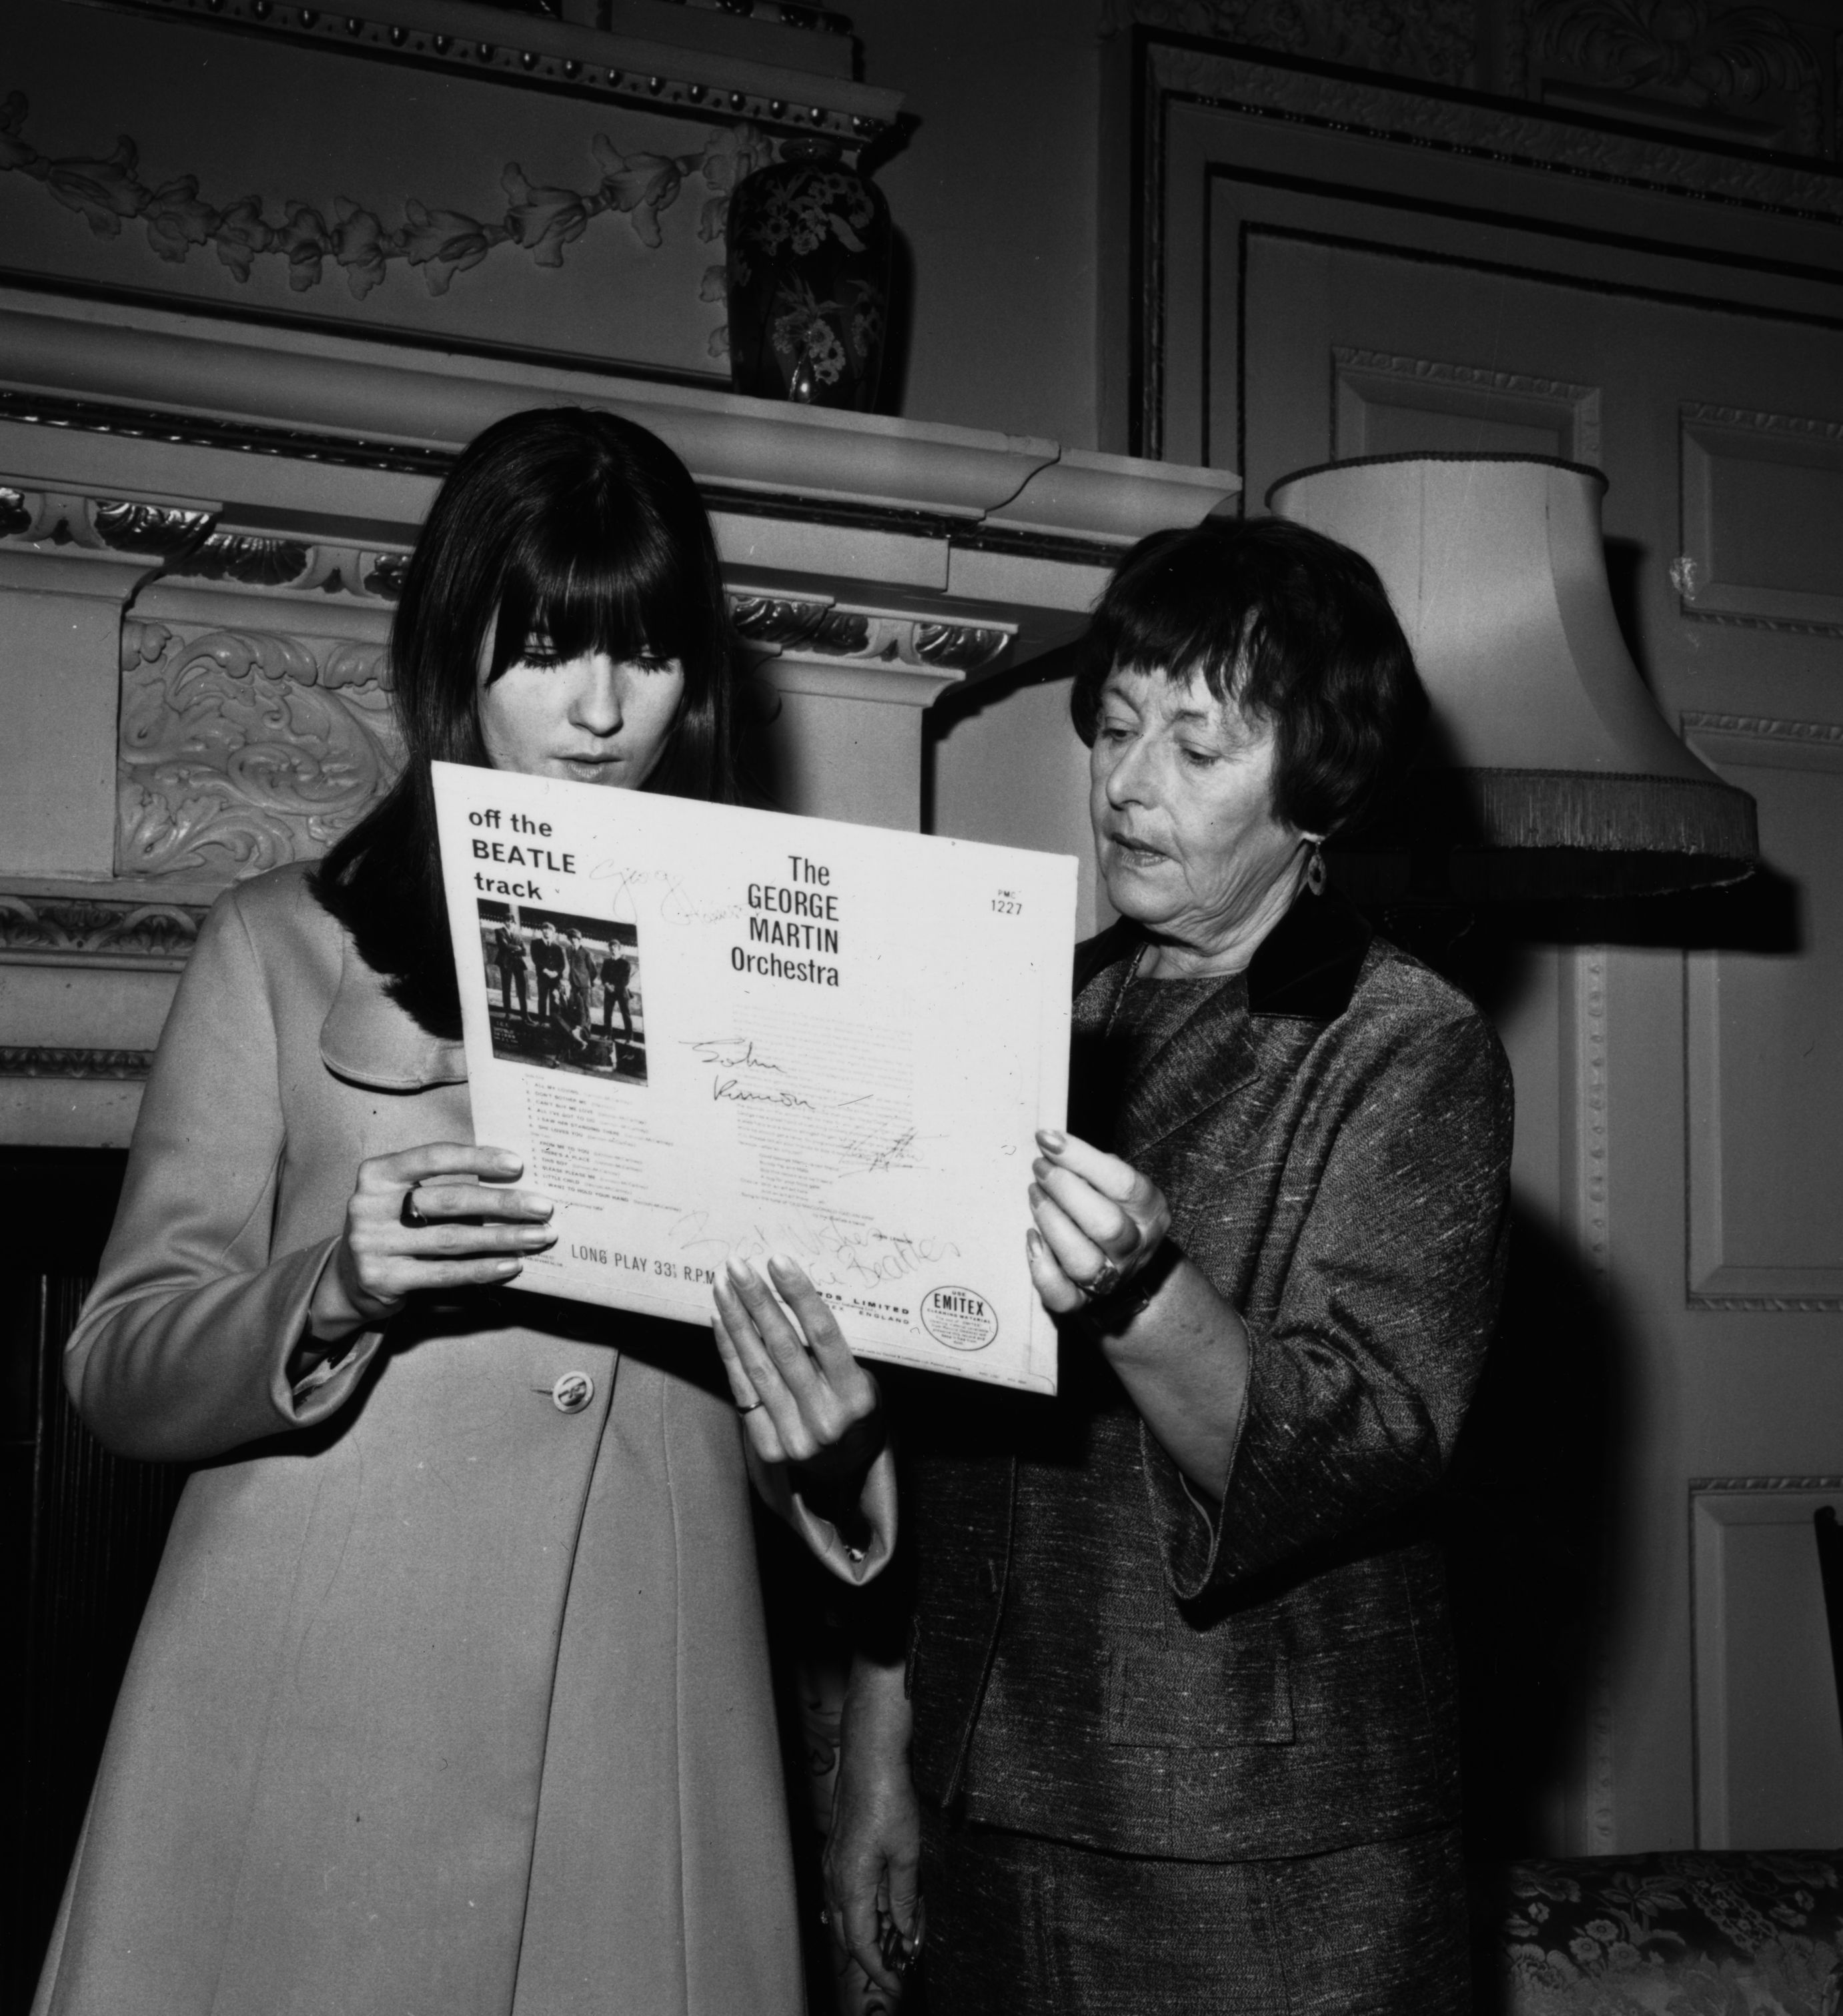 25th November 1965: Hostess of the television pop programme 'Ready Steady Go' Cathy McGowan presents a signed Beatles record to Lady Mayoress Denny at the Mansion House, London. The record is donated by the Beatles as a raffle prize for the British Red Cross Society's City of London Branch Fair. (Photo by Keystone/Getty Images)